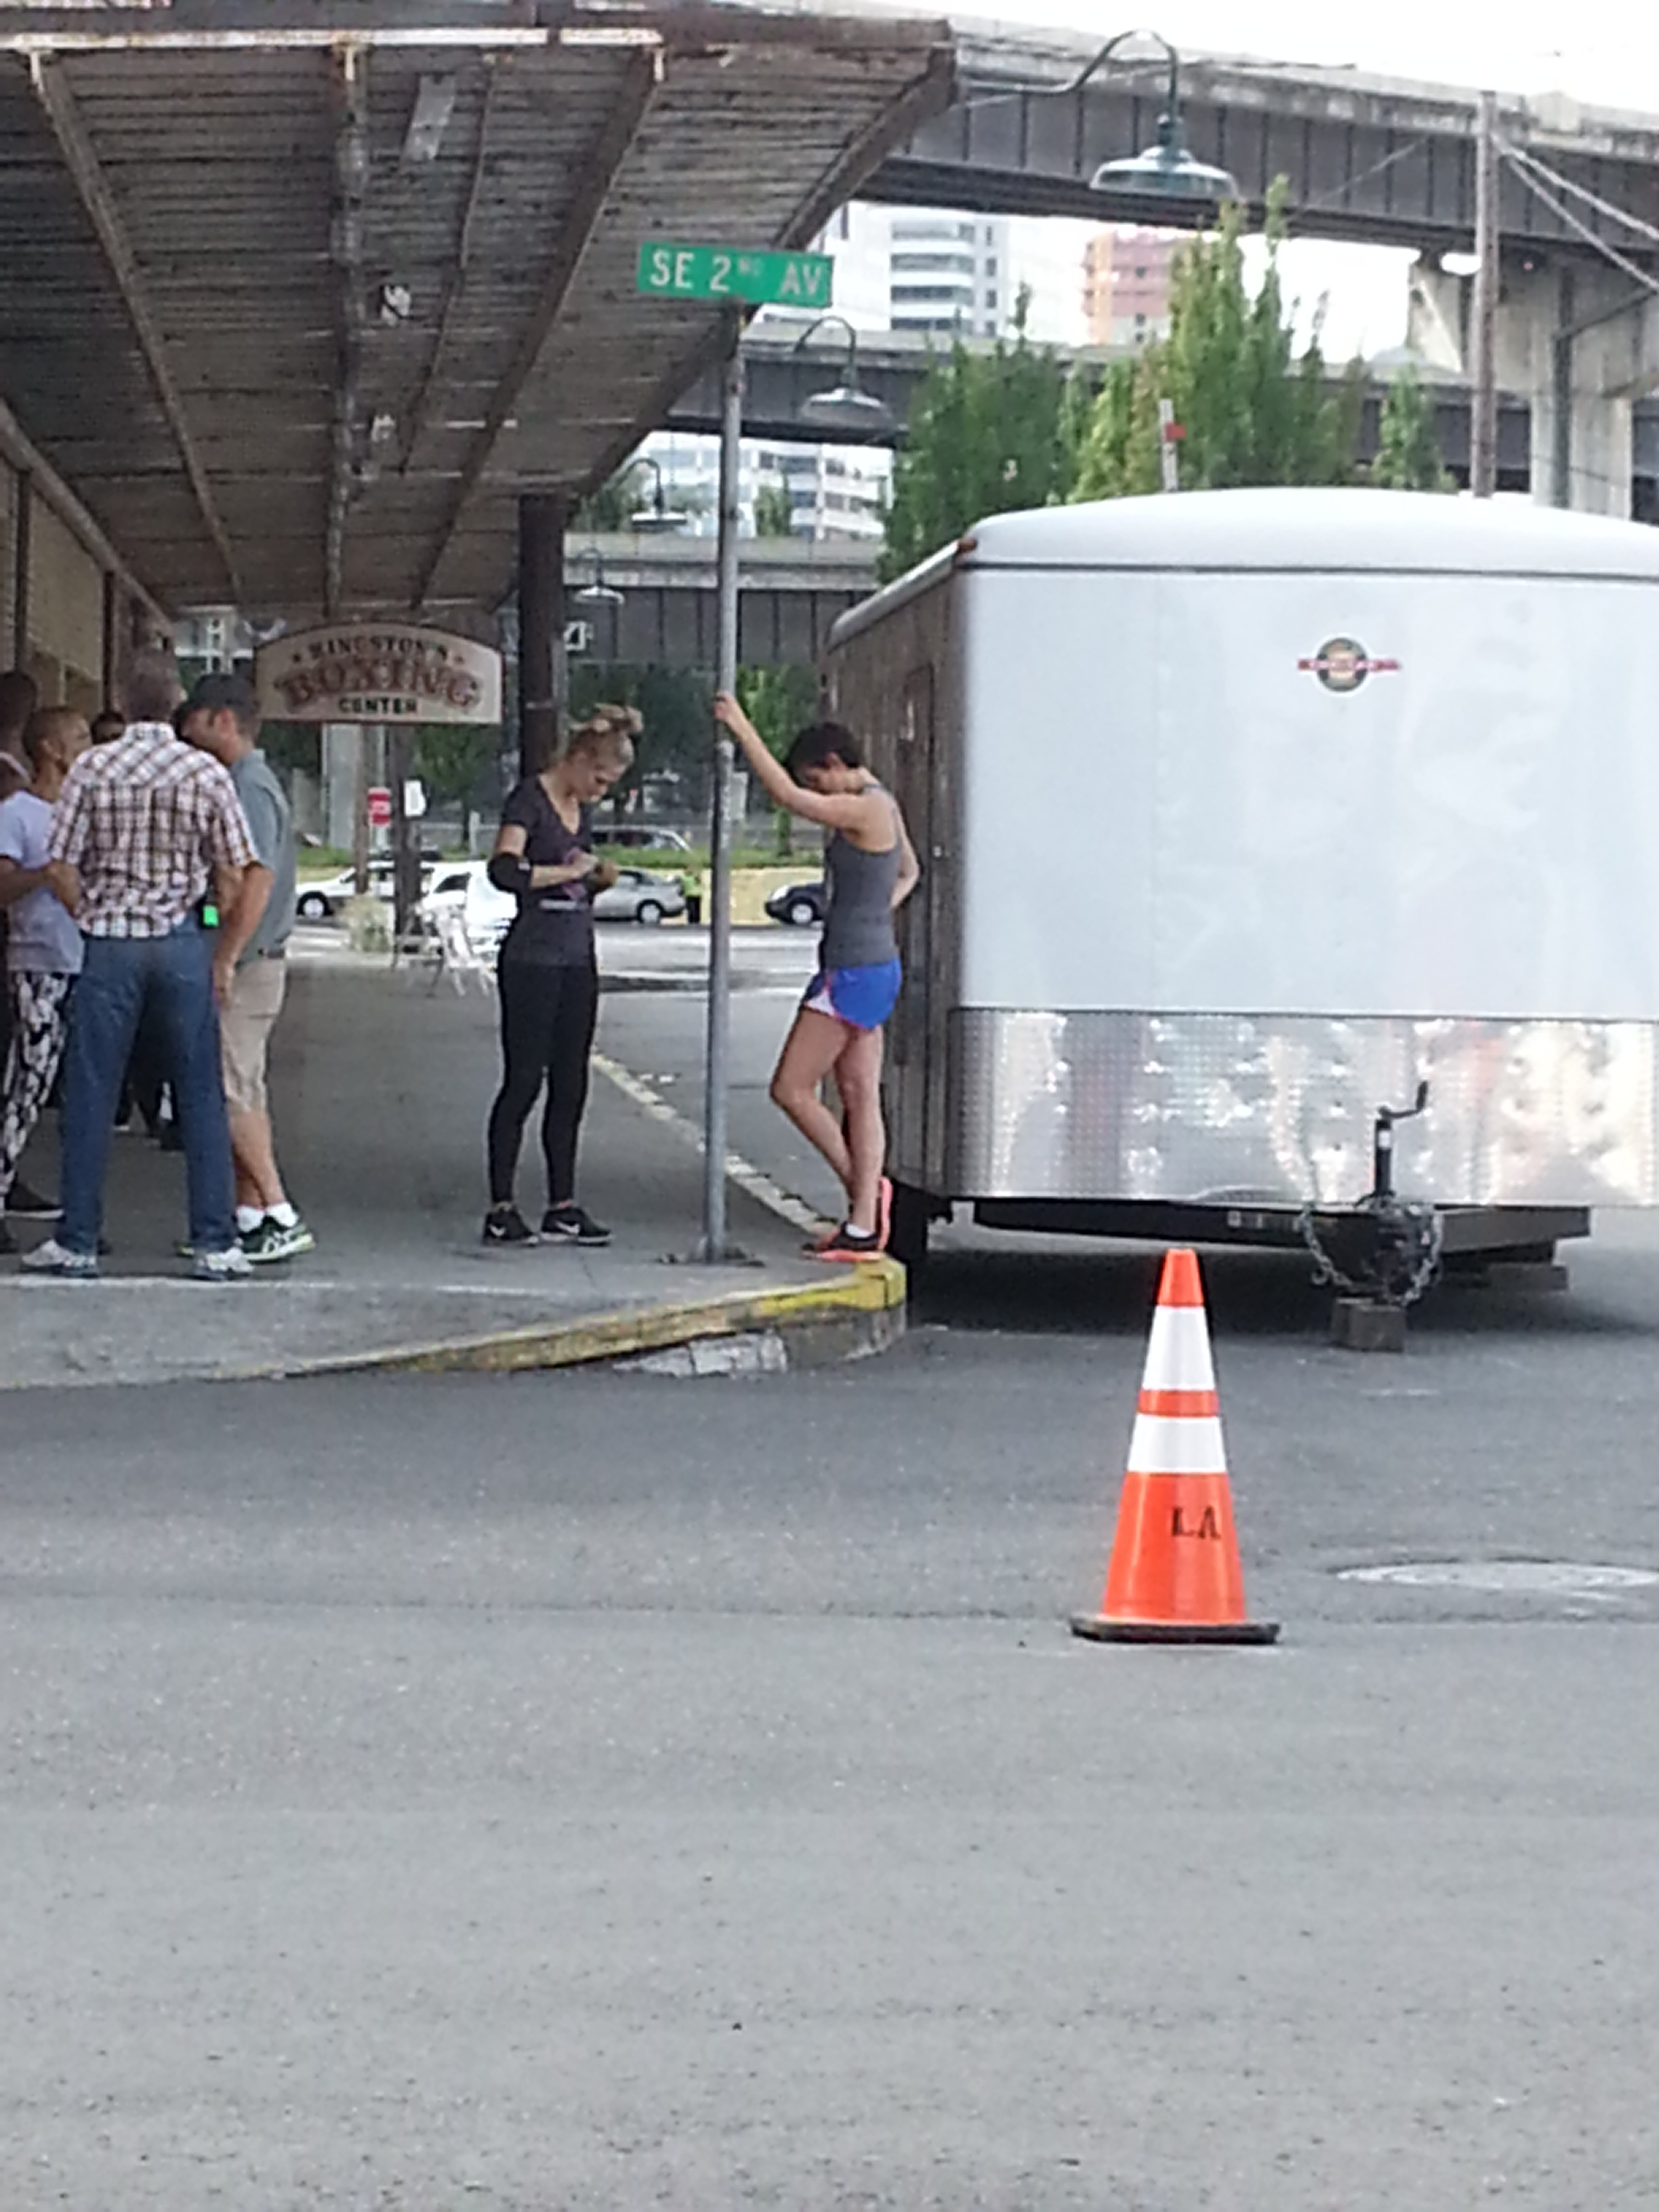 GRIMM FILMING MTG  CAST IN PORTLAND